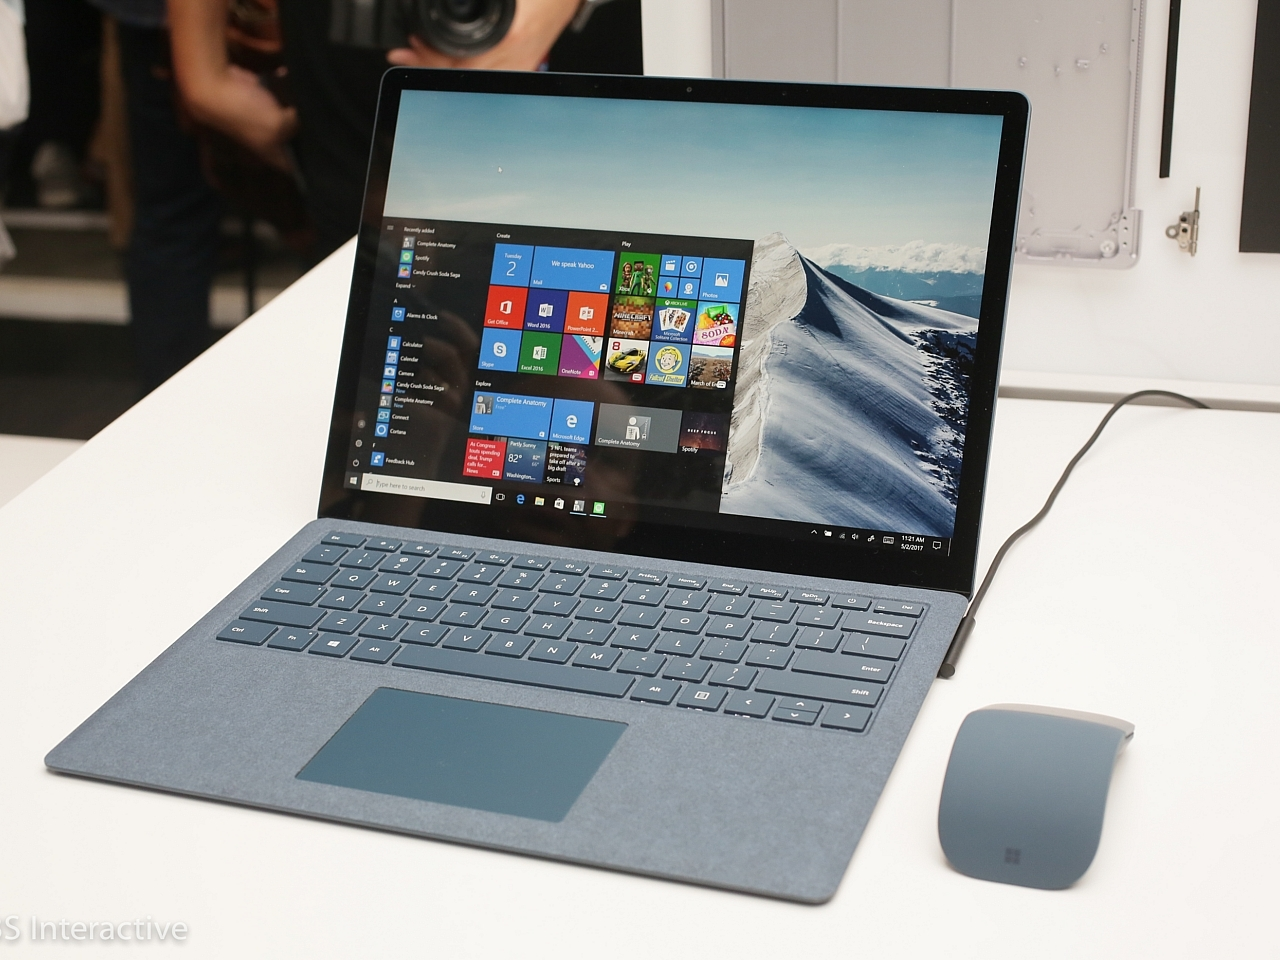 microsoft-surface-laptop_1280x960.jpg